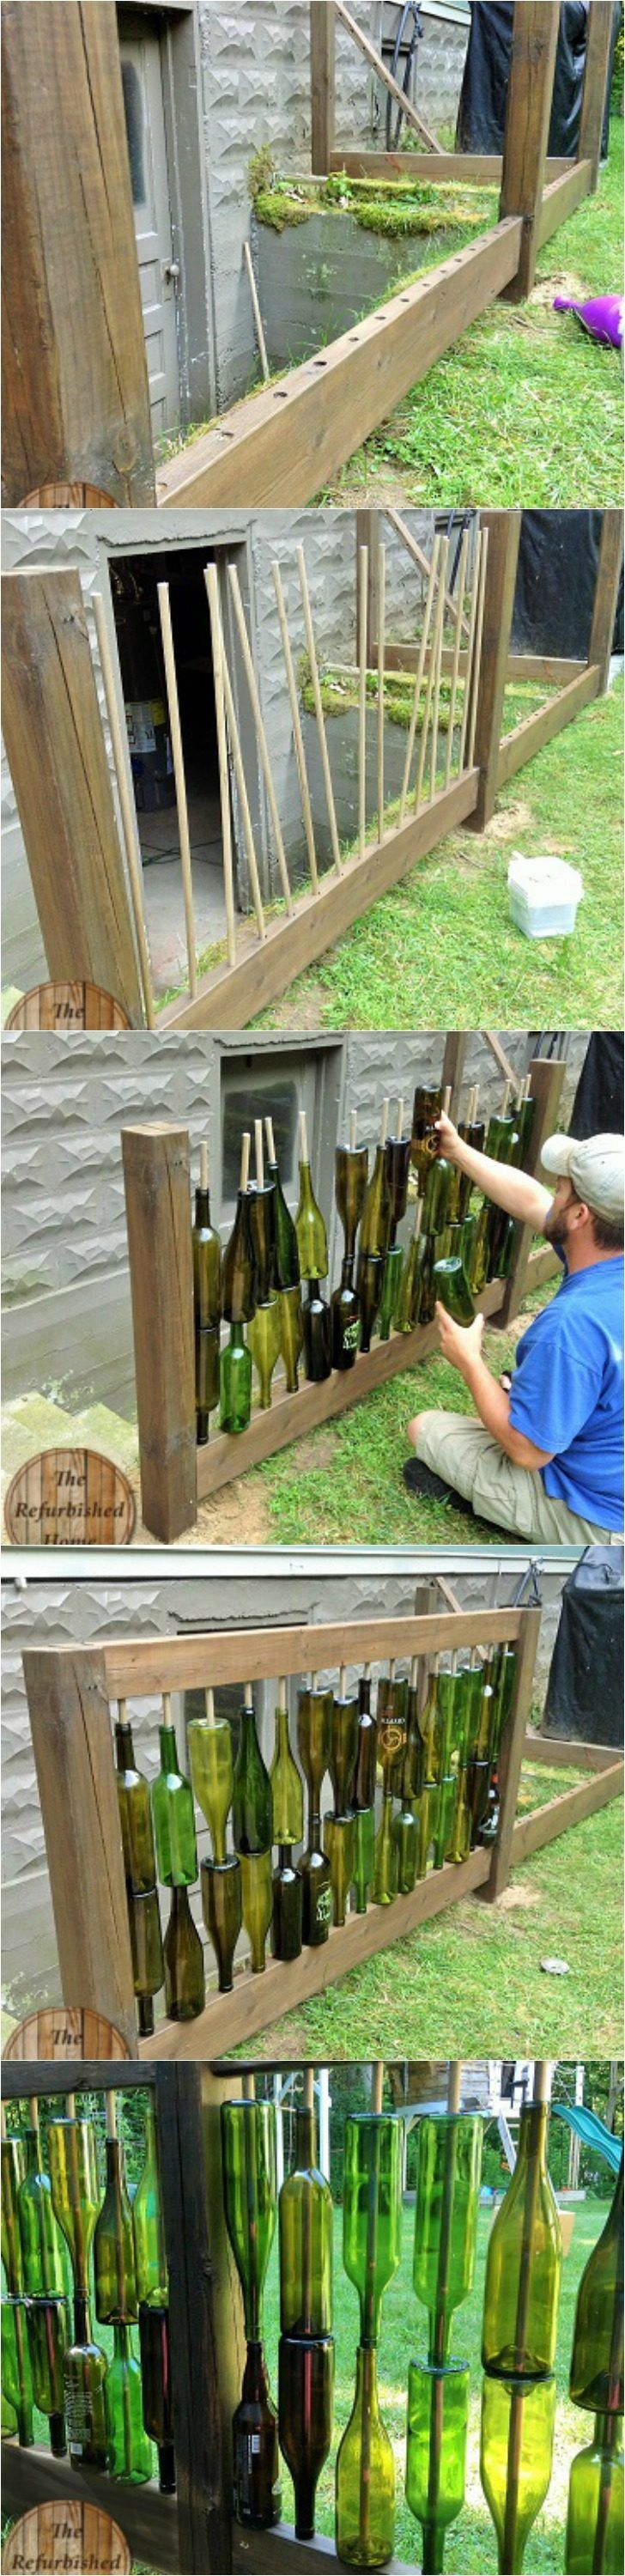 This would be cool here because the wind would whistle through the bottles and make some pretty kick-ass music.